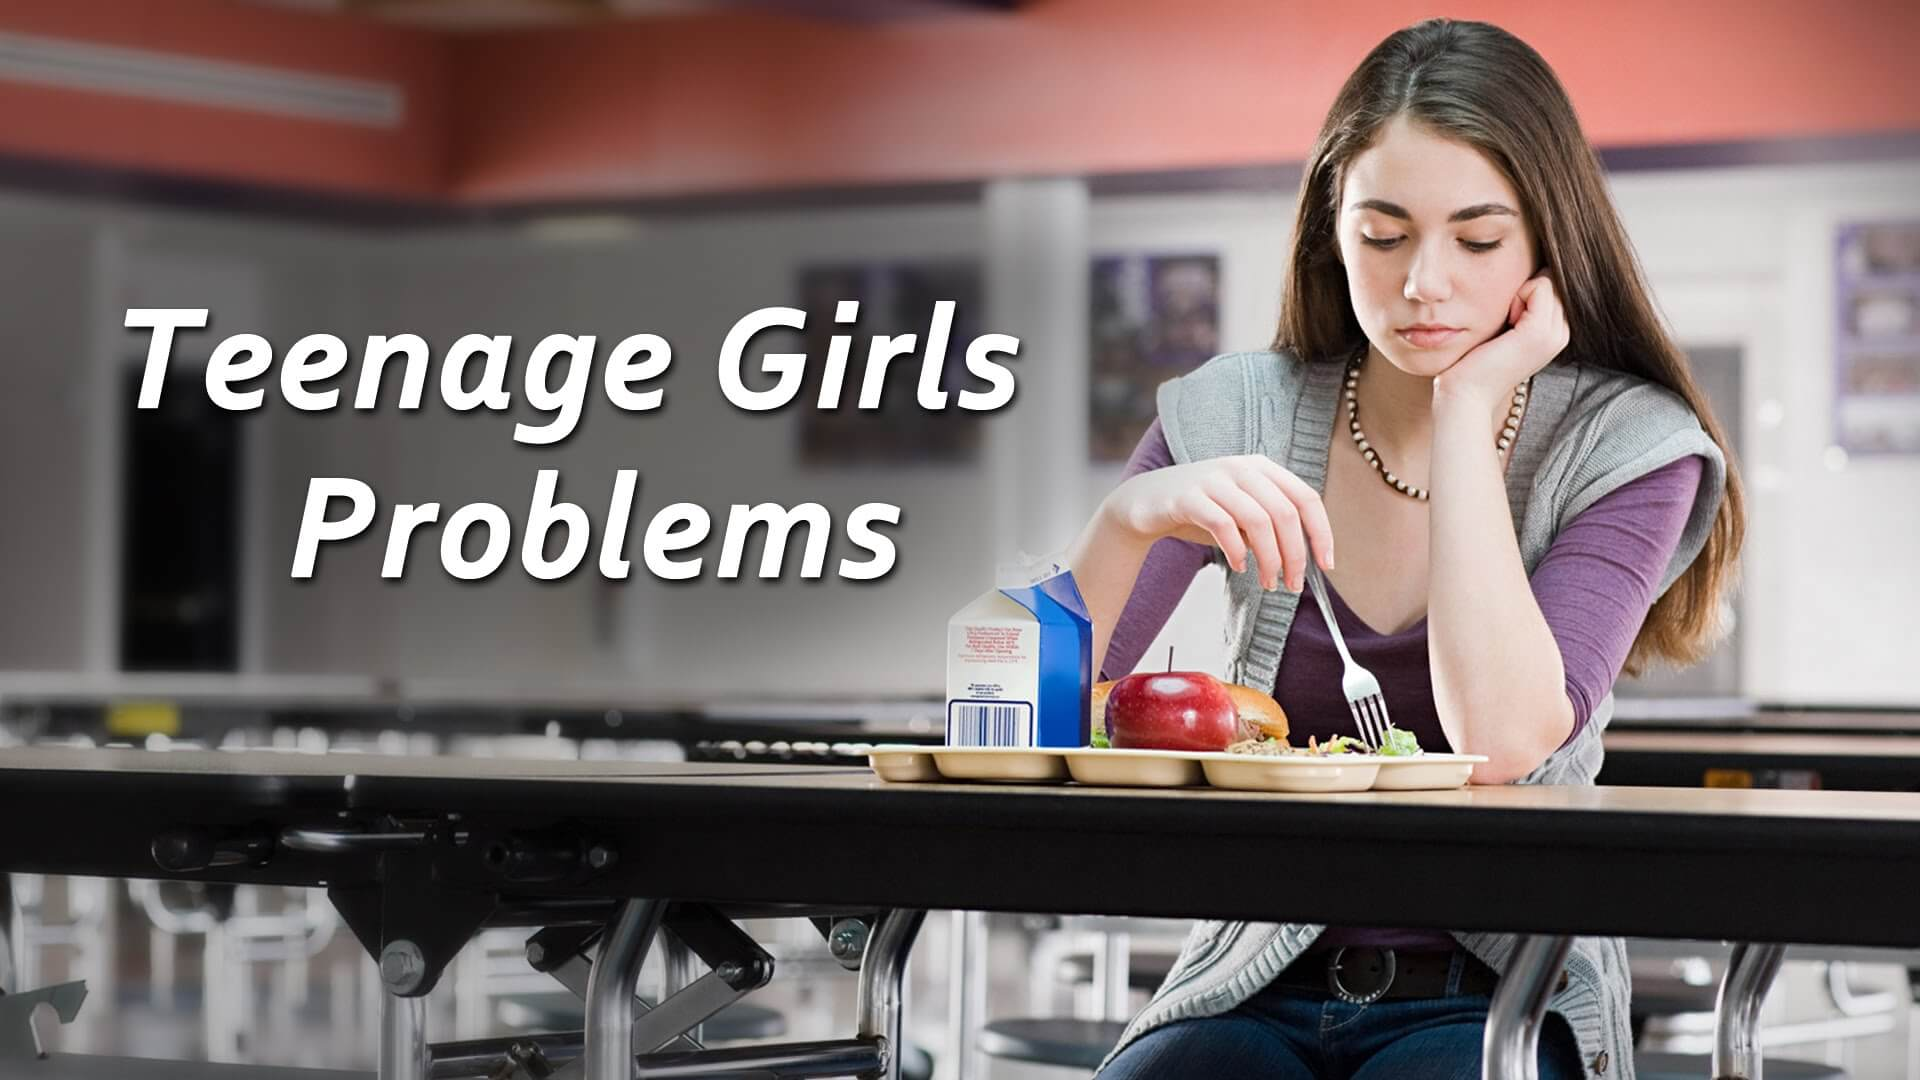 Common Teenage Girls Problems and Their Solutions